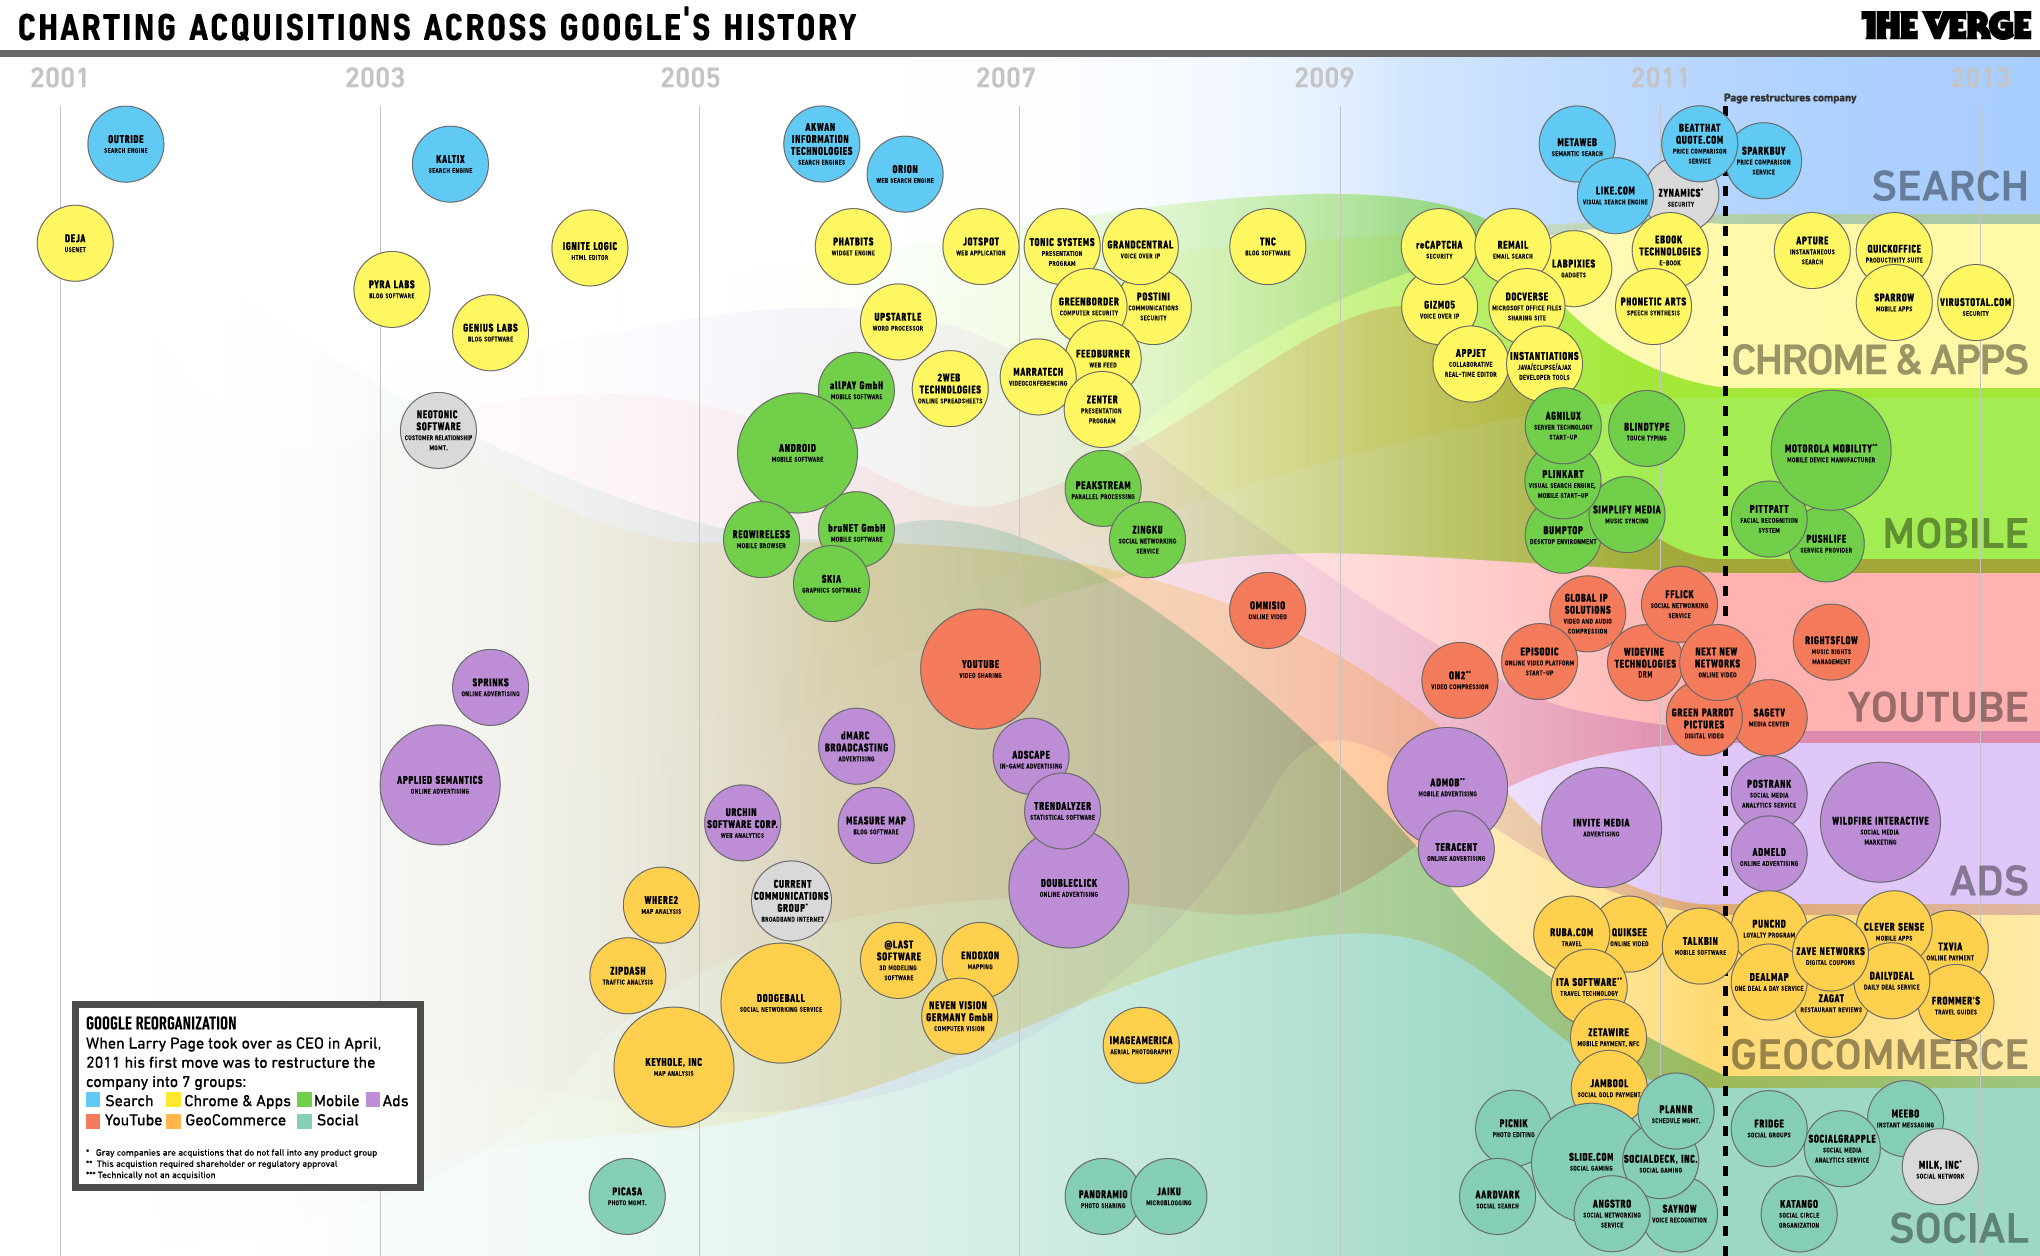 The Charted History of Google's Acquisition Growth [Photo]